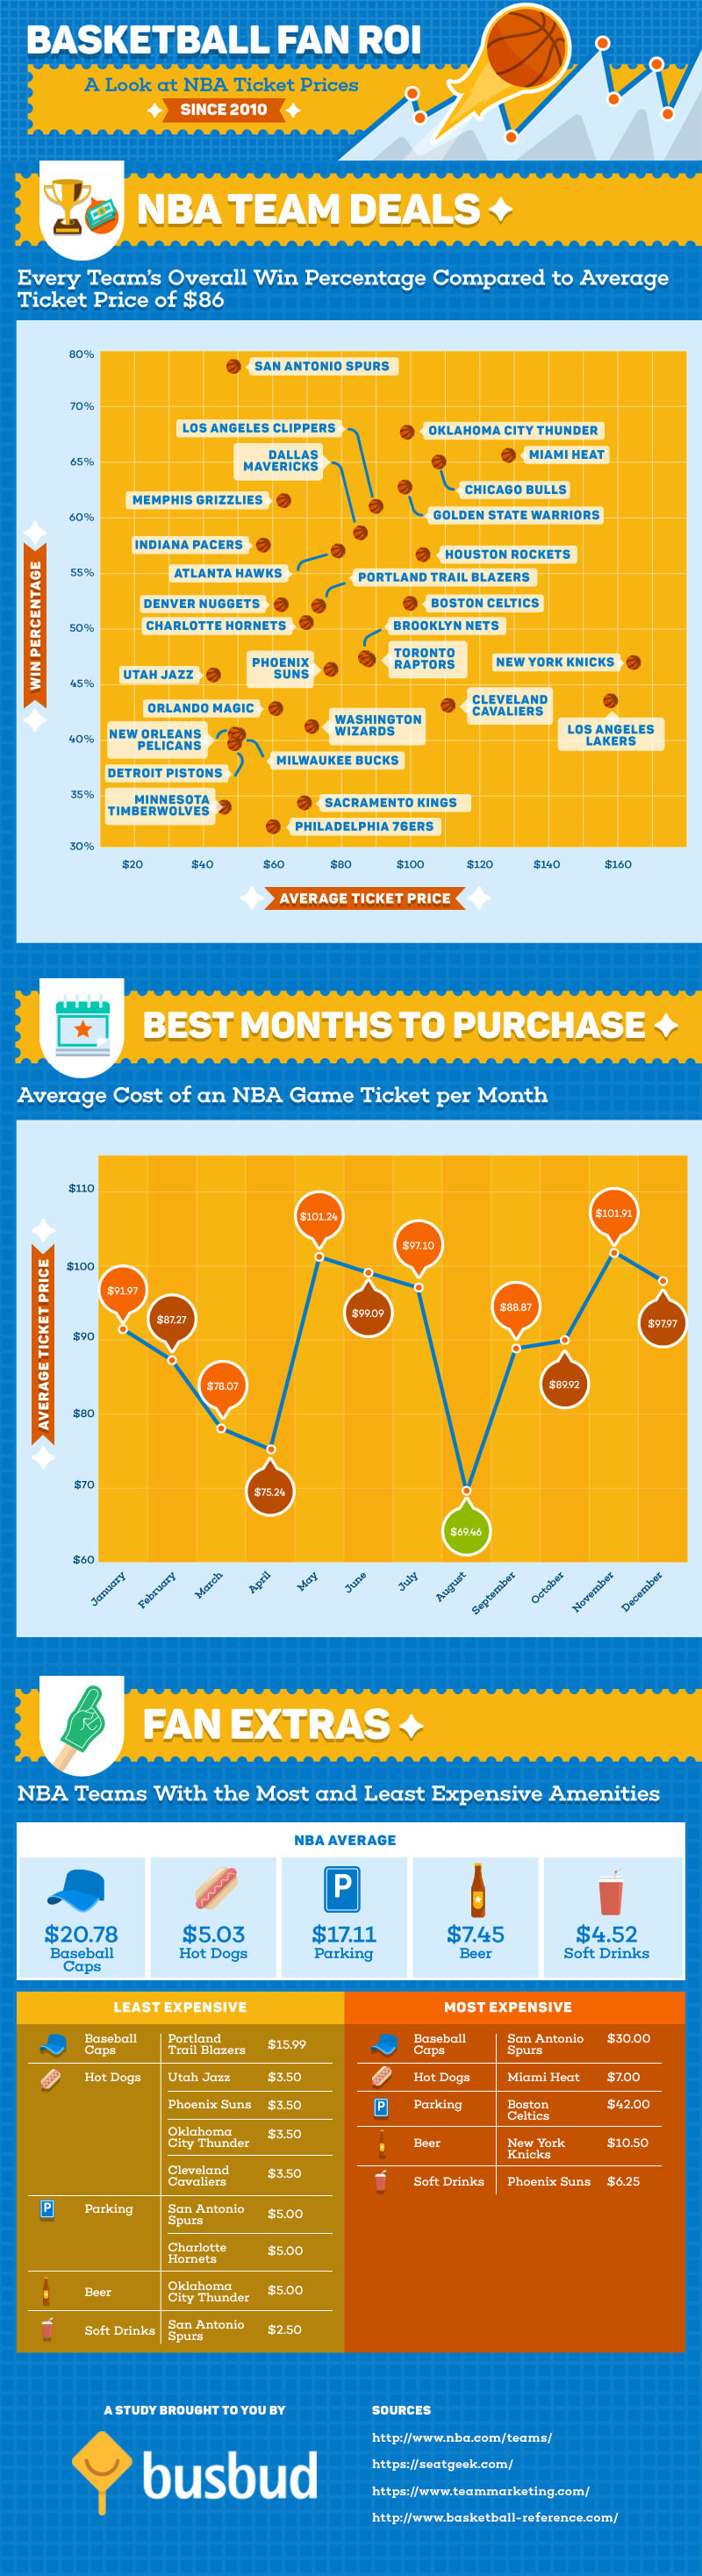 NBA-Fan-ROI-infographic-plaza